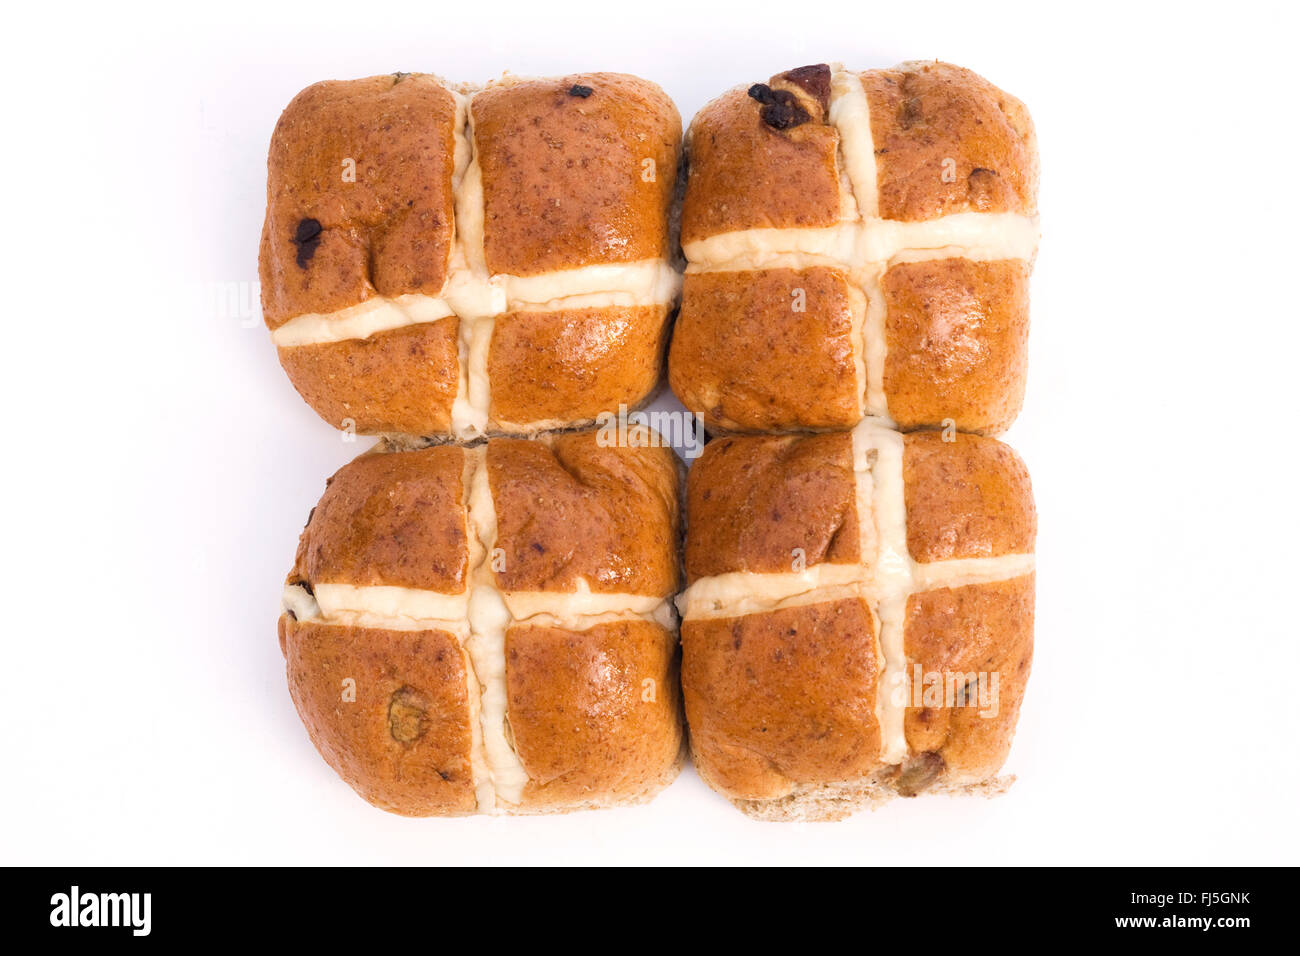 Four hot cross buns on a white background. - Stock Image